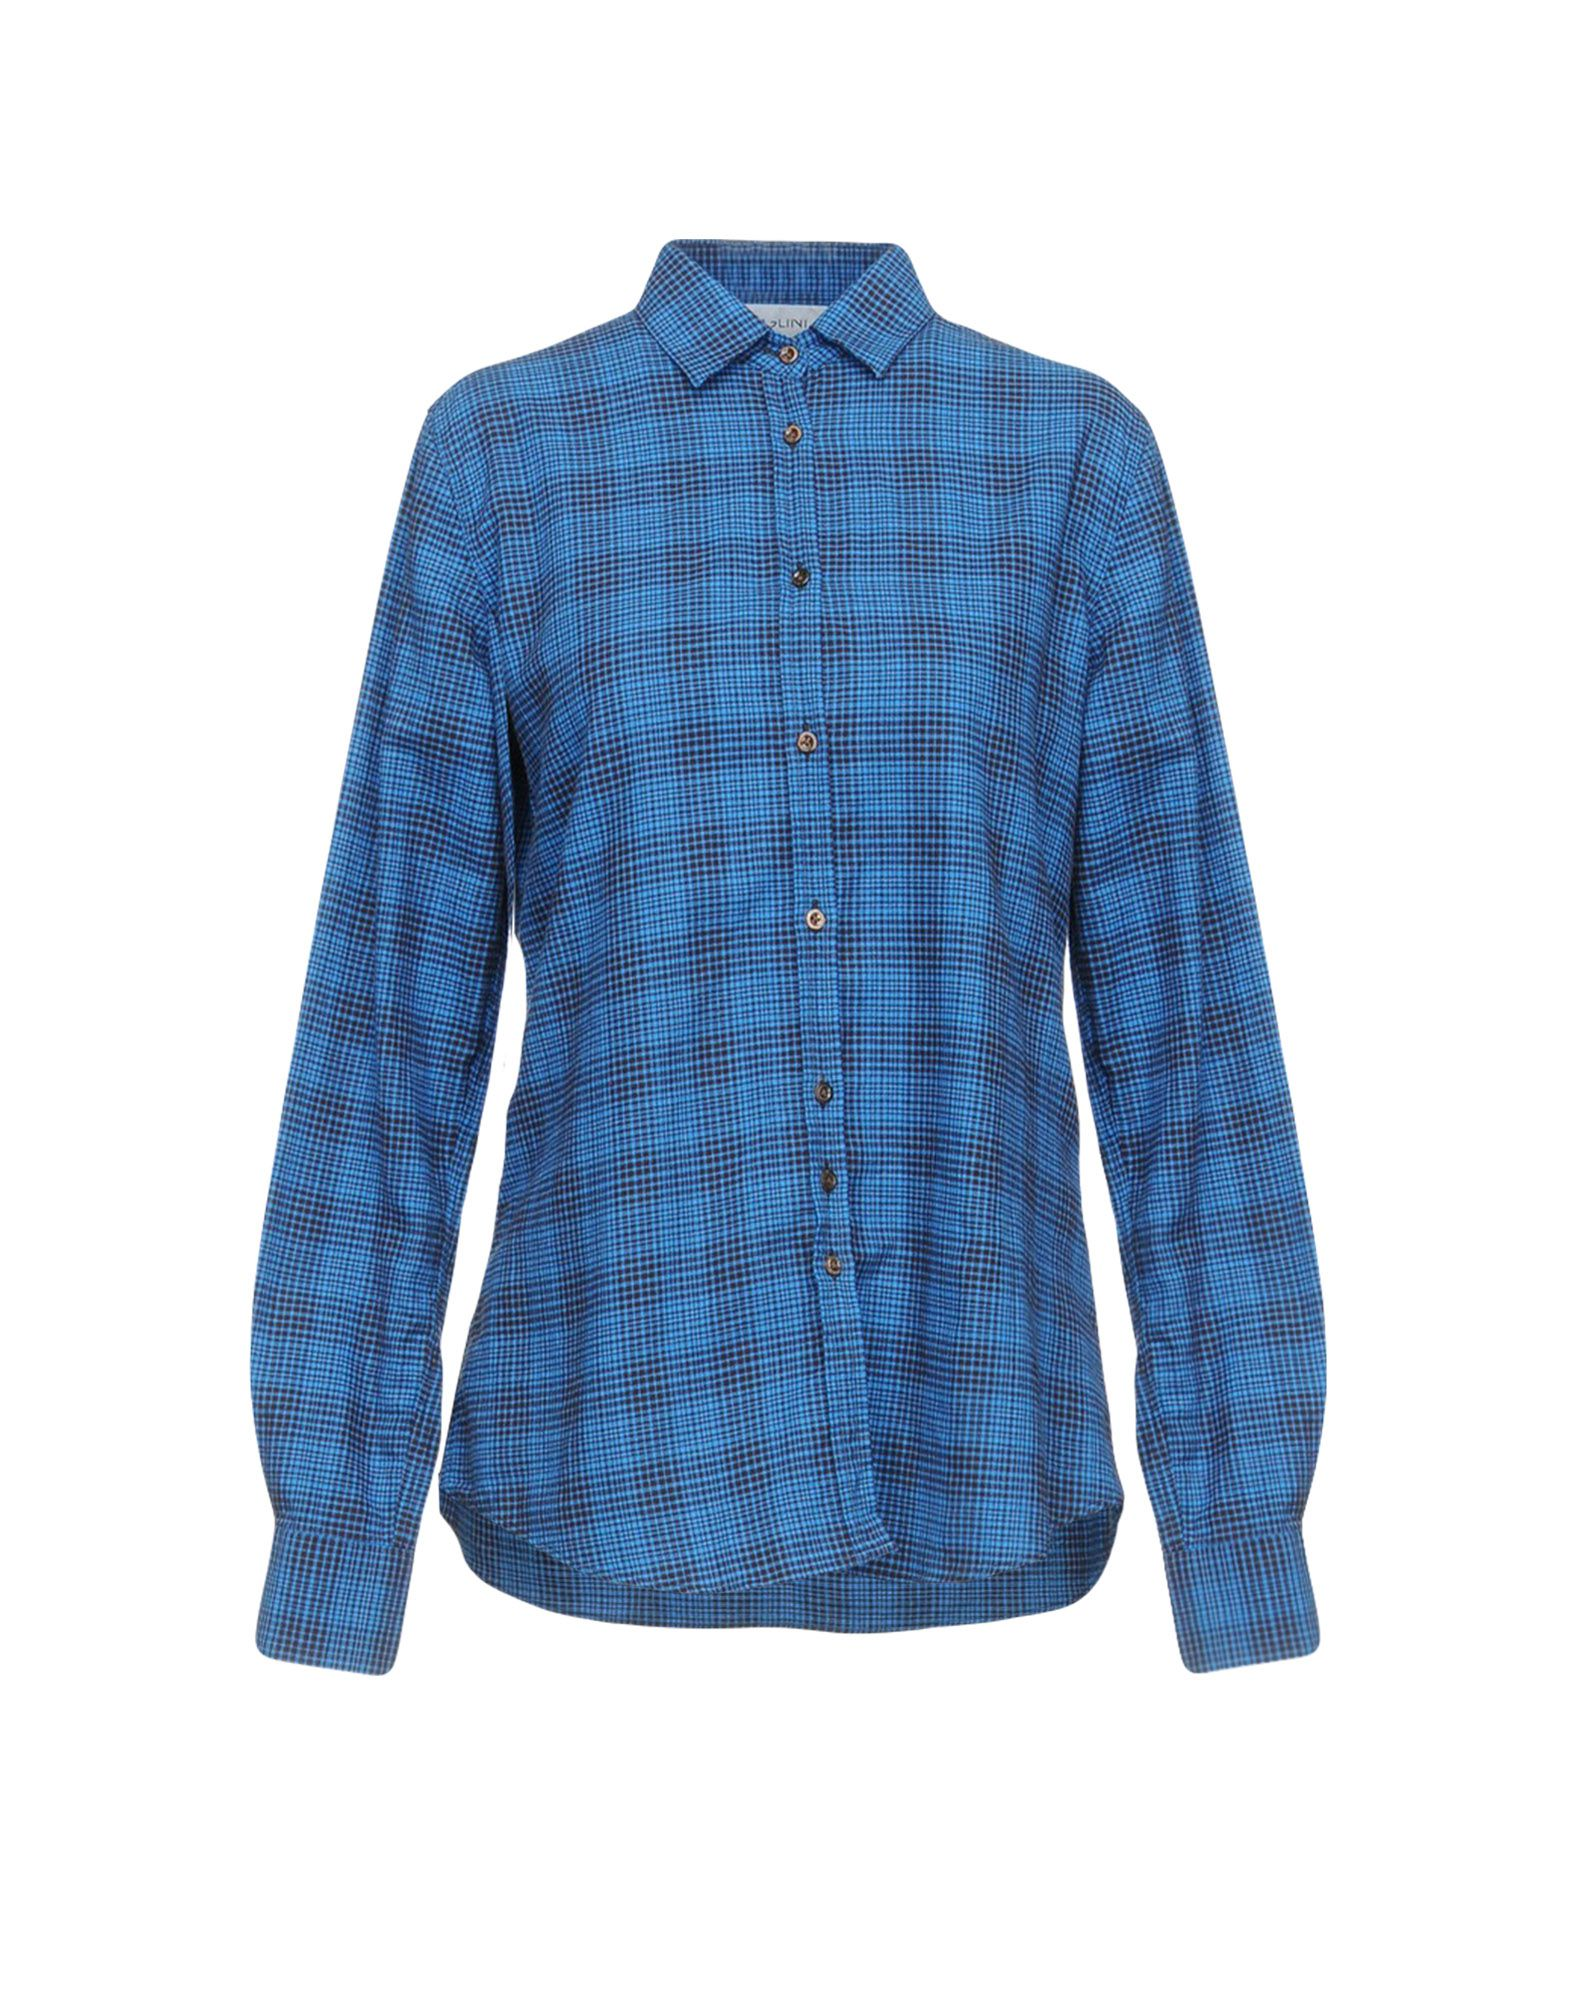 AGLINI Checked Shirt in Blue